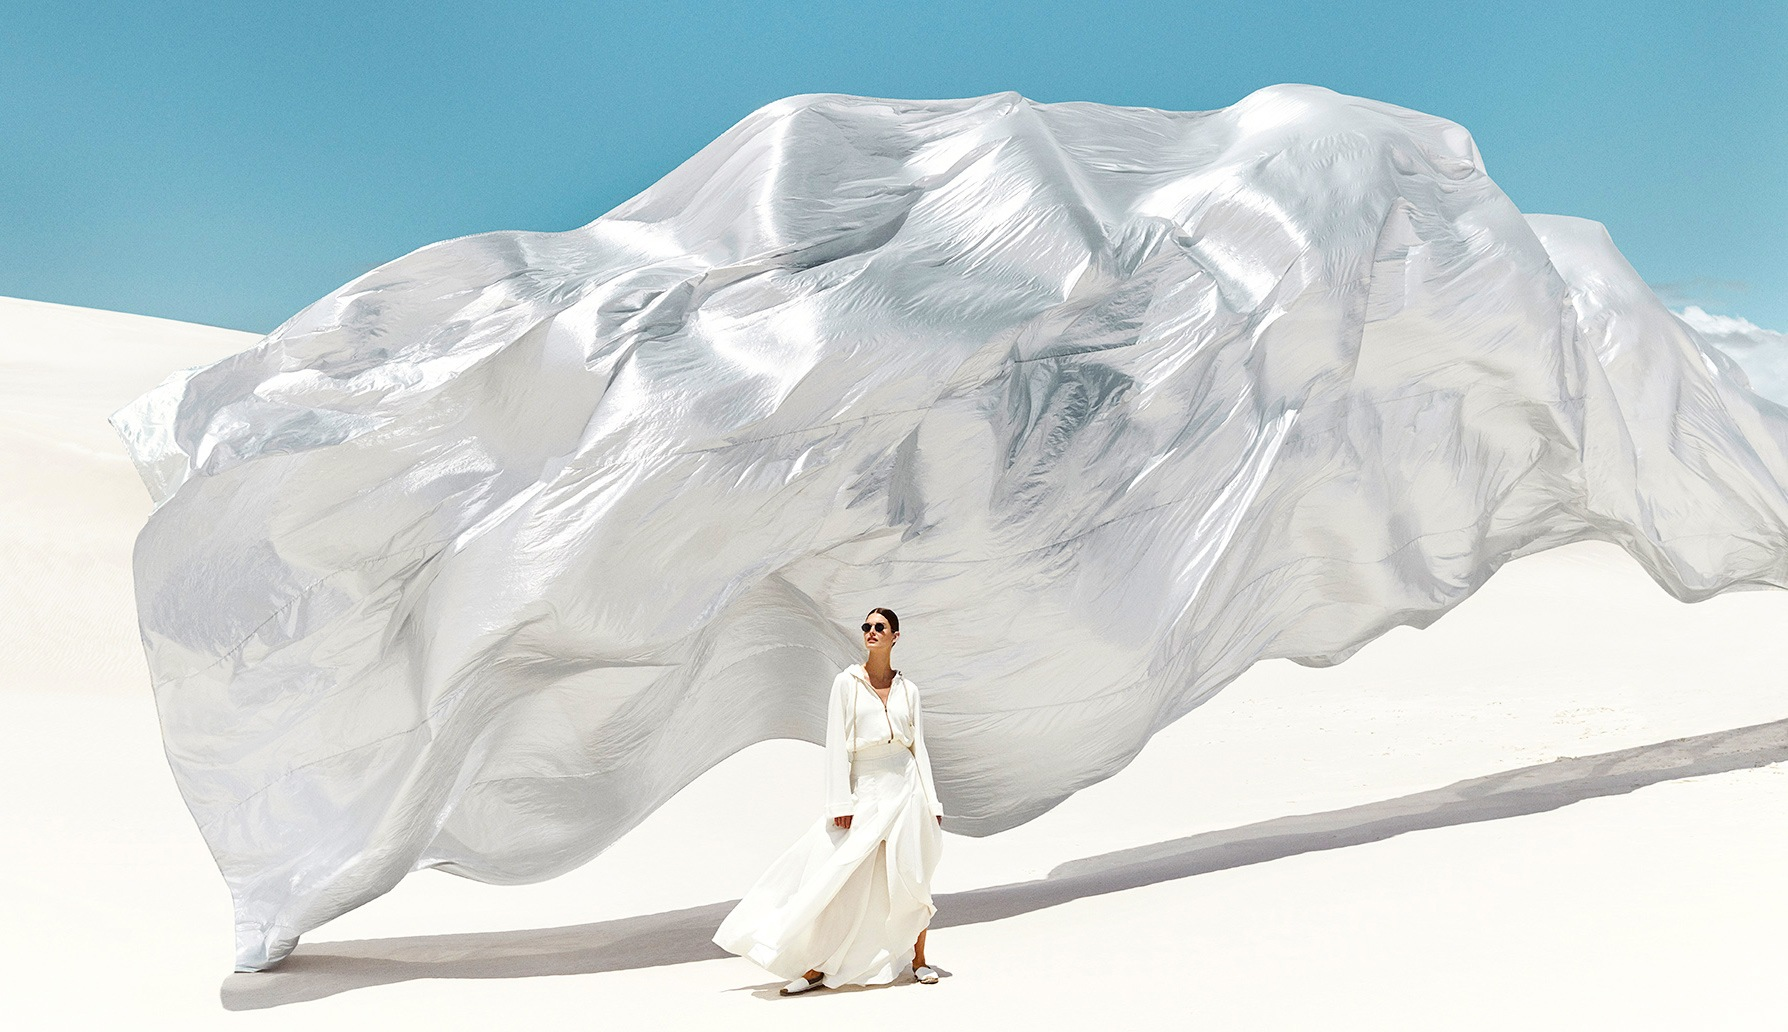 Brunello Cucinelli Wanderlust Dreams campaign. Looks available at the newly opened Bal Harbour boutique on Level 1.